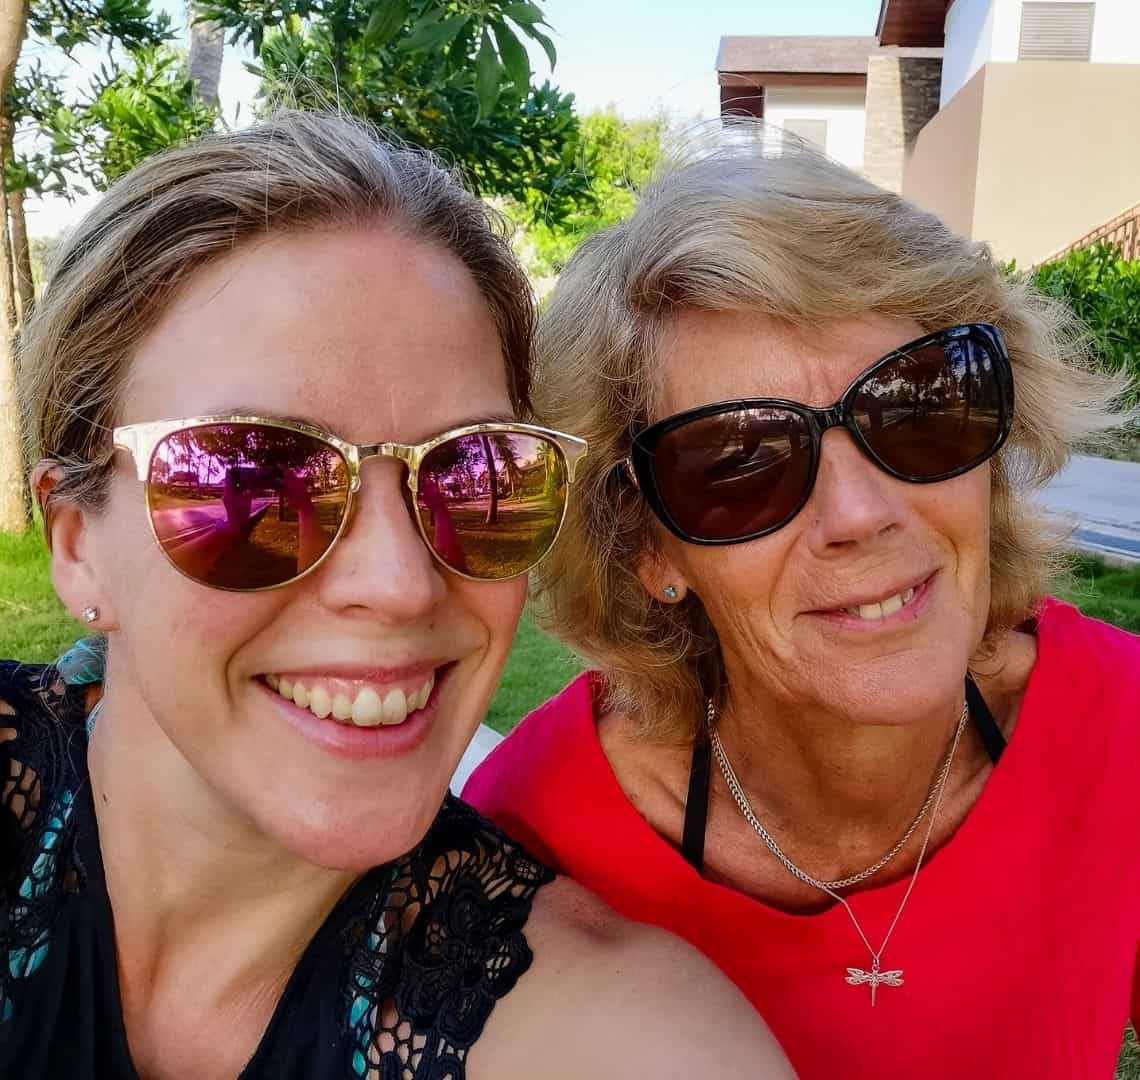 Me and Granny wanderlust selfie. We are both wearing sunglasses. We have swimsuits on under our tops - mine is black and hers is red. Behind us are a few trees, some blue sky and a path.